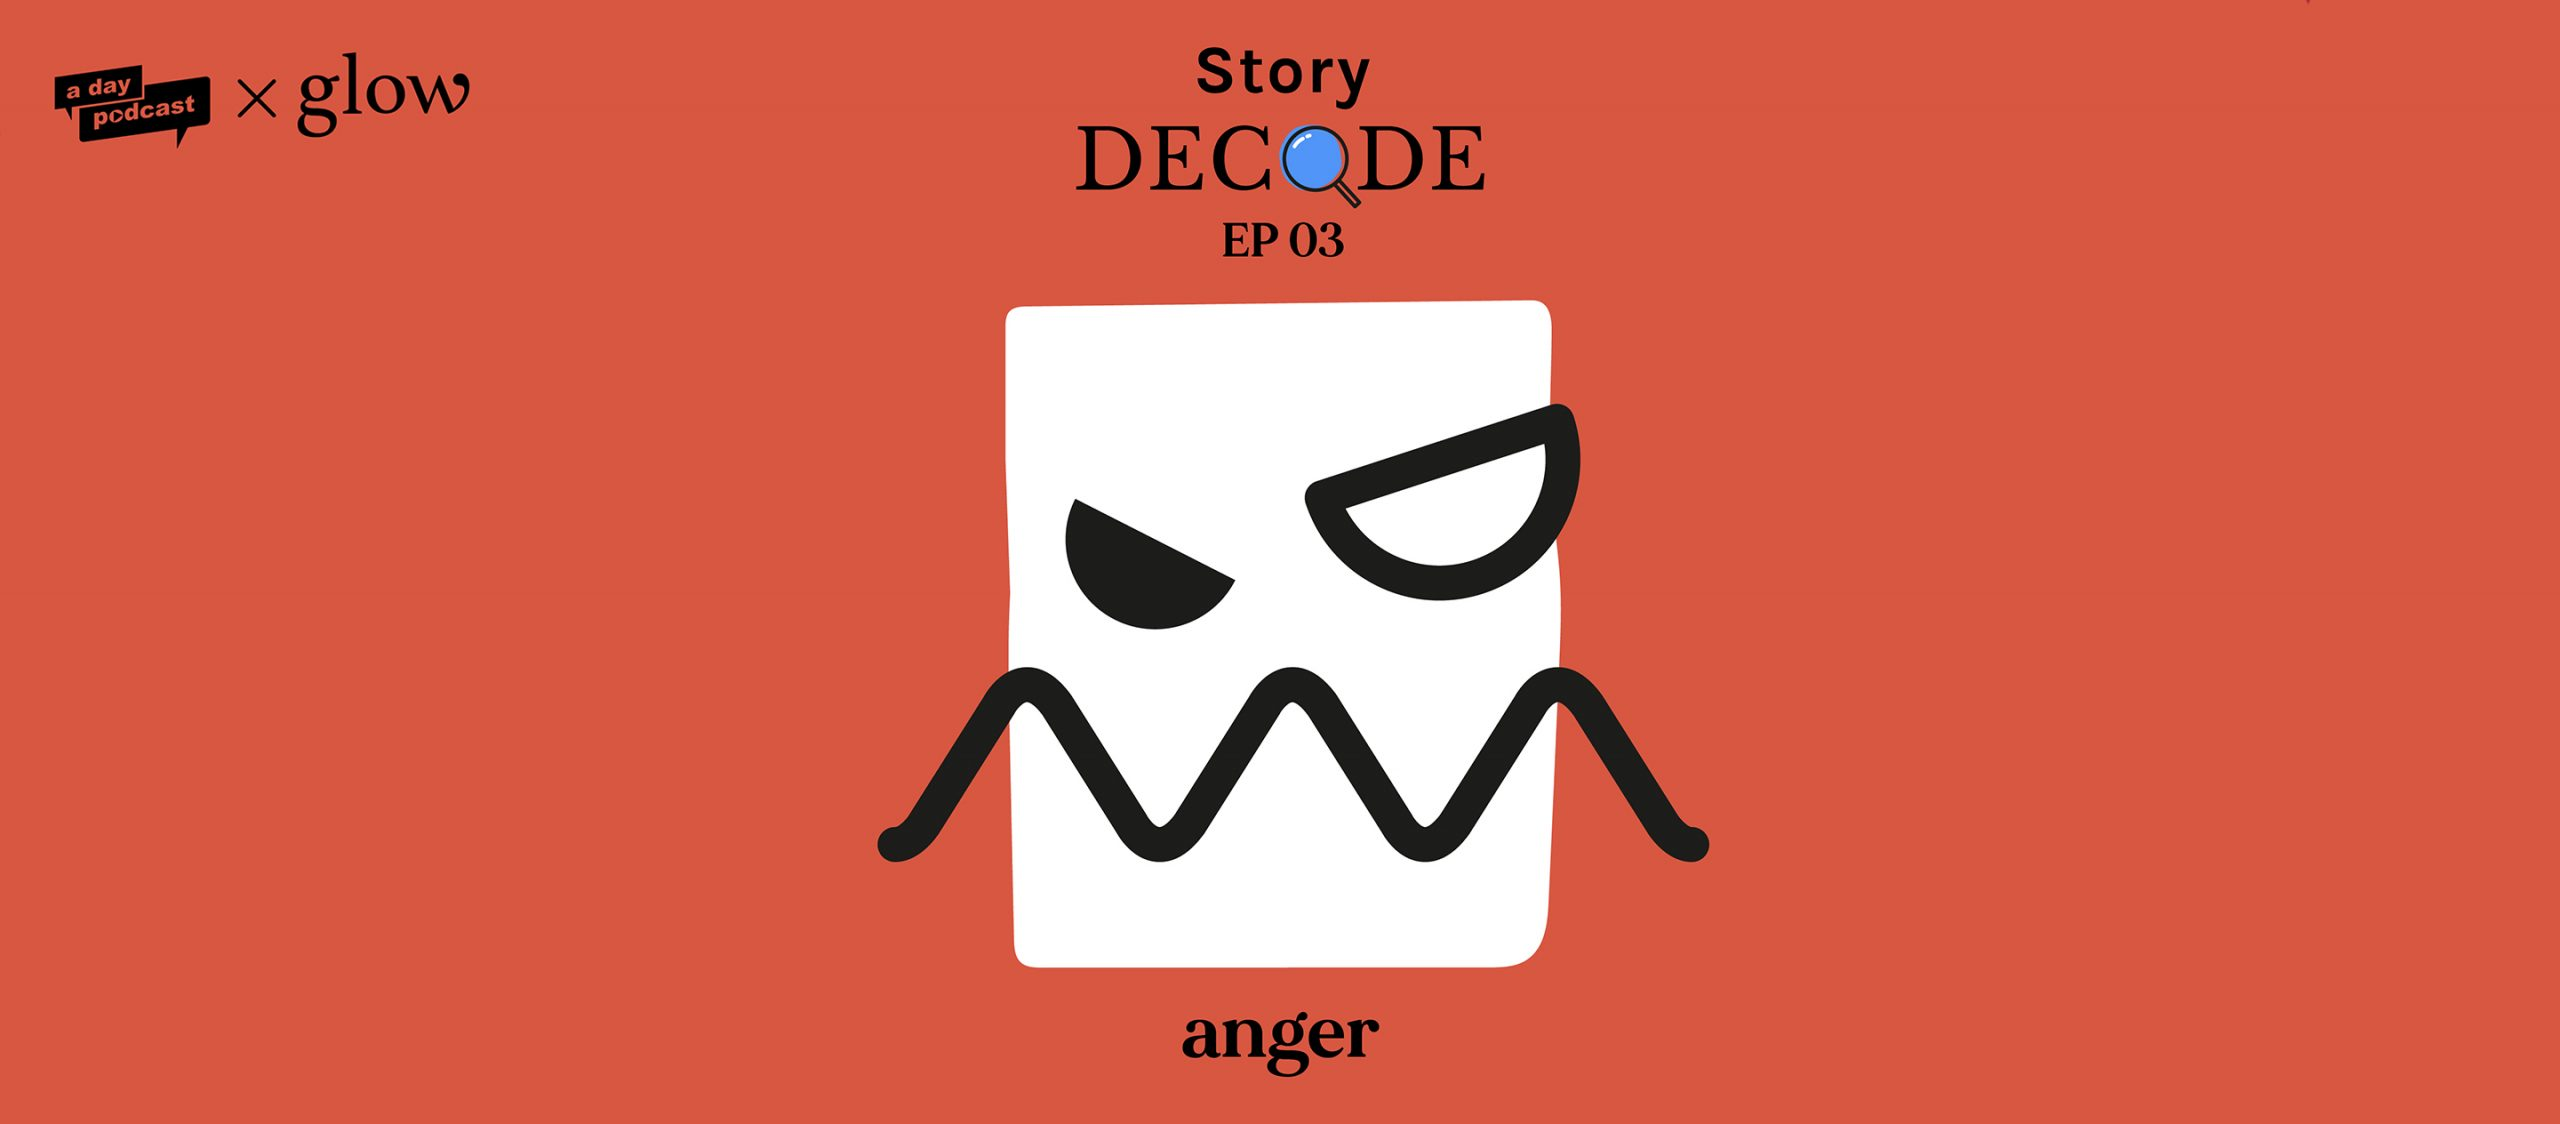 StoryDecode EP.03 : ANGER (ความโกรธ)   a day Podcast x Glow Story